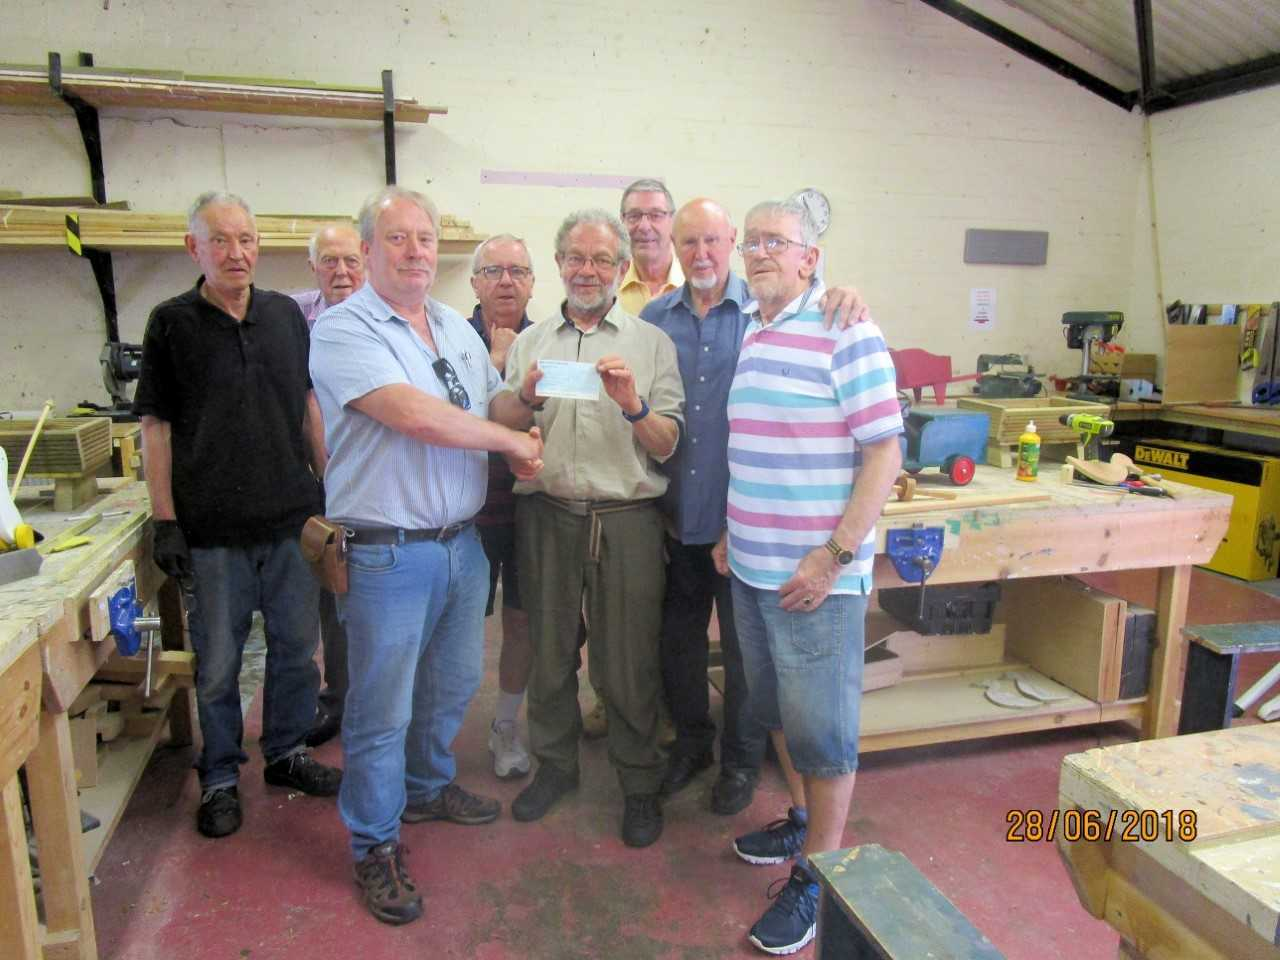 Members of Barrhead Rotary and the Men's Shed